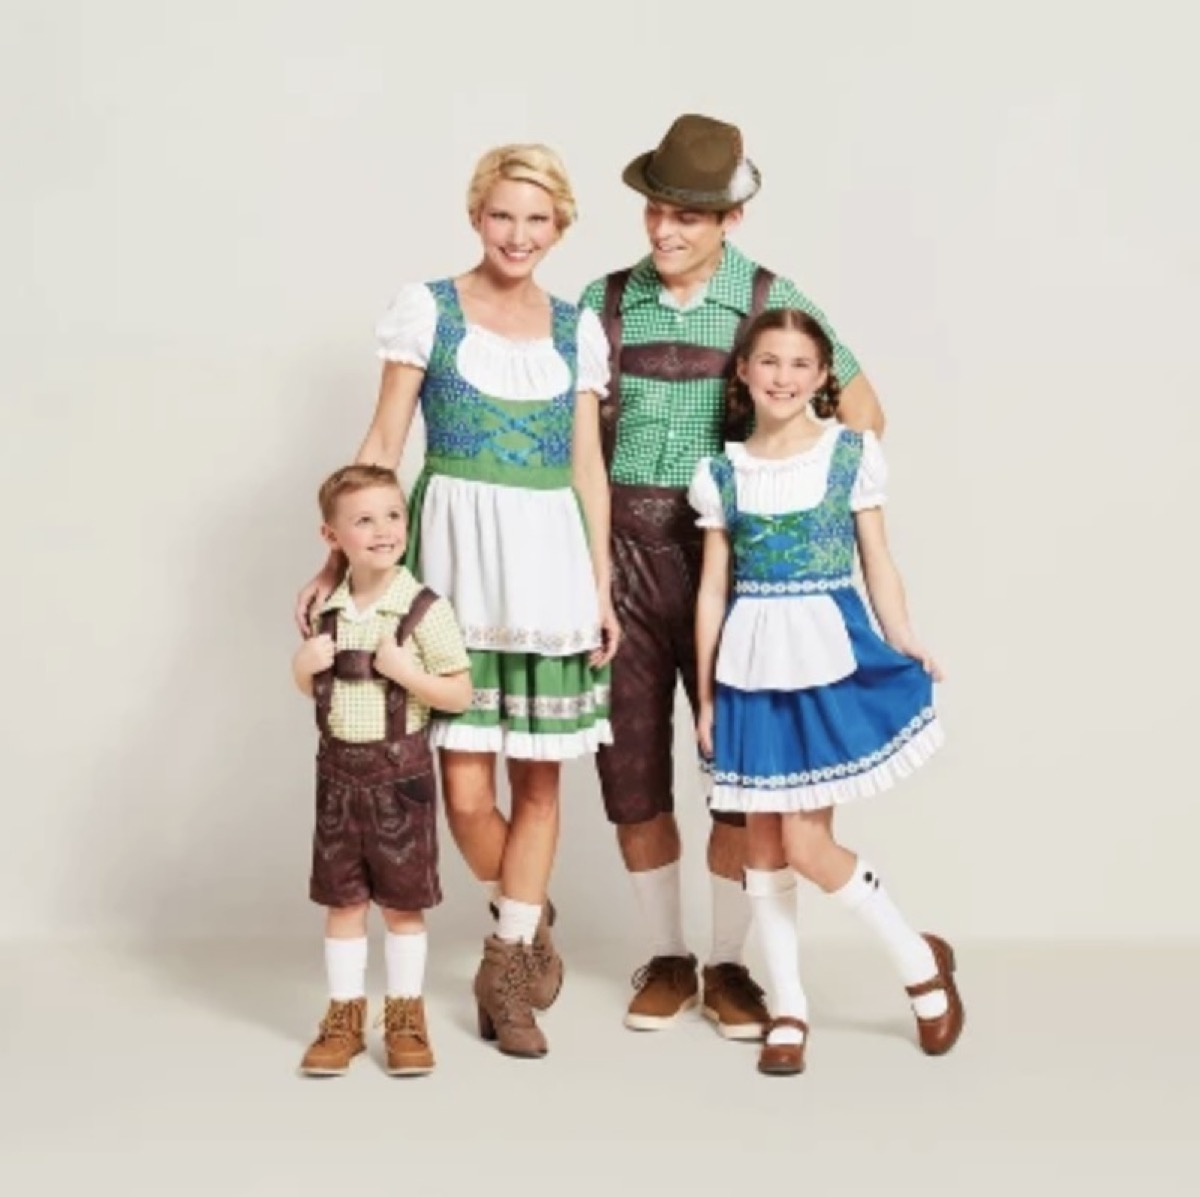 man, woman, and two children dressed in traditional german costumes, family halloween costumes